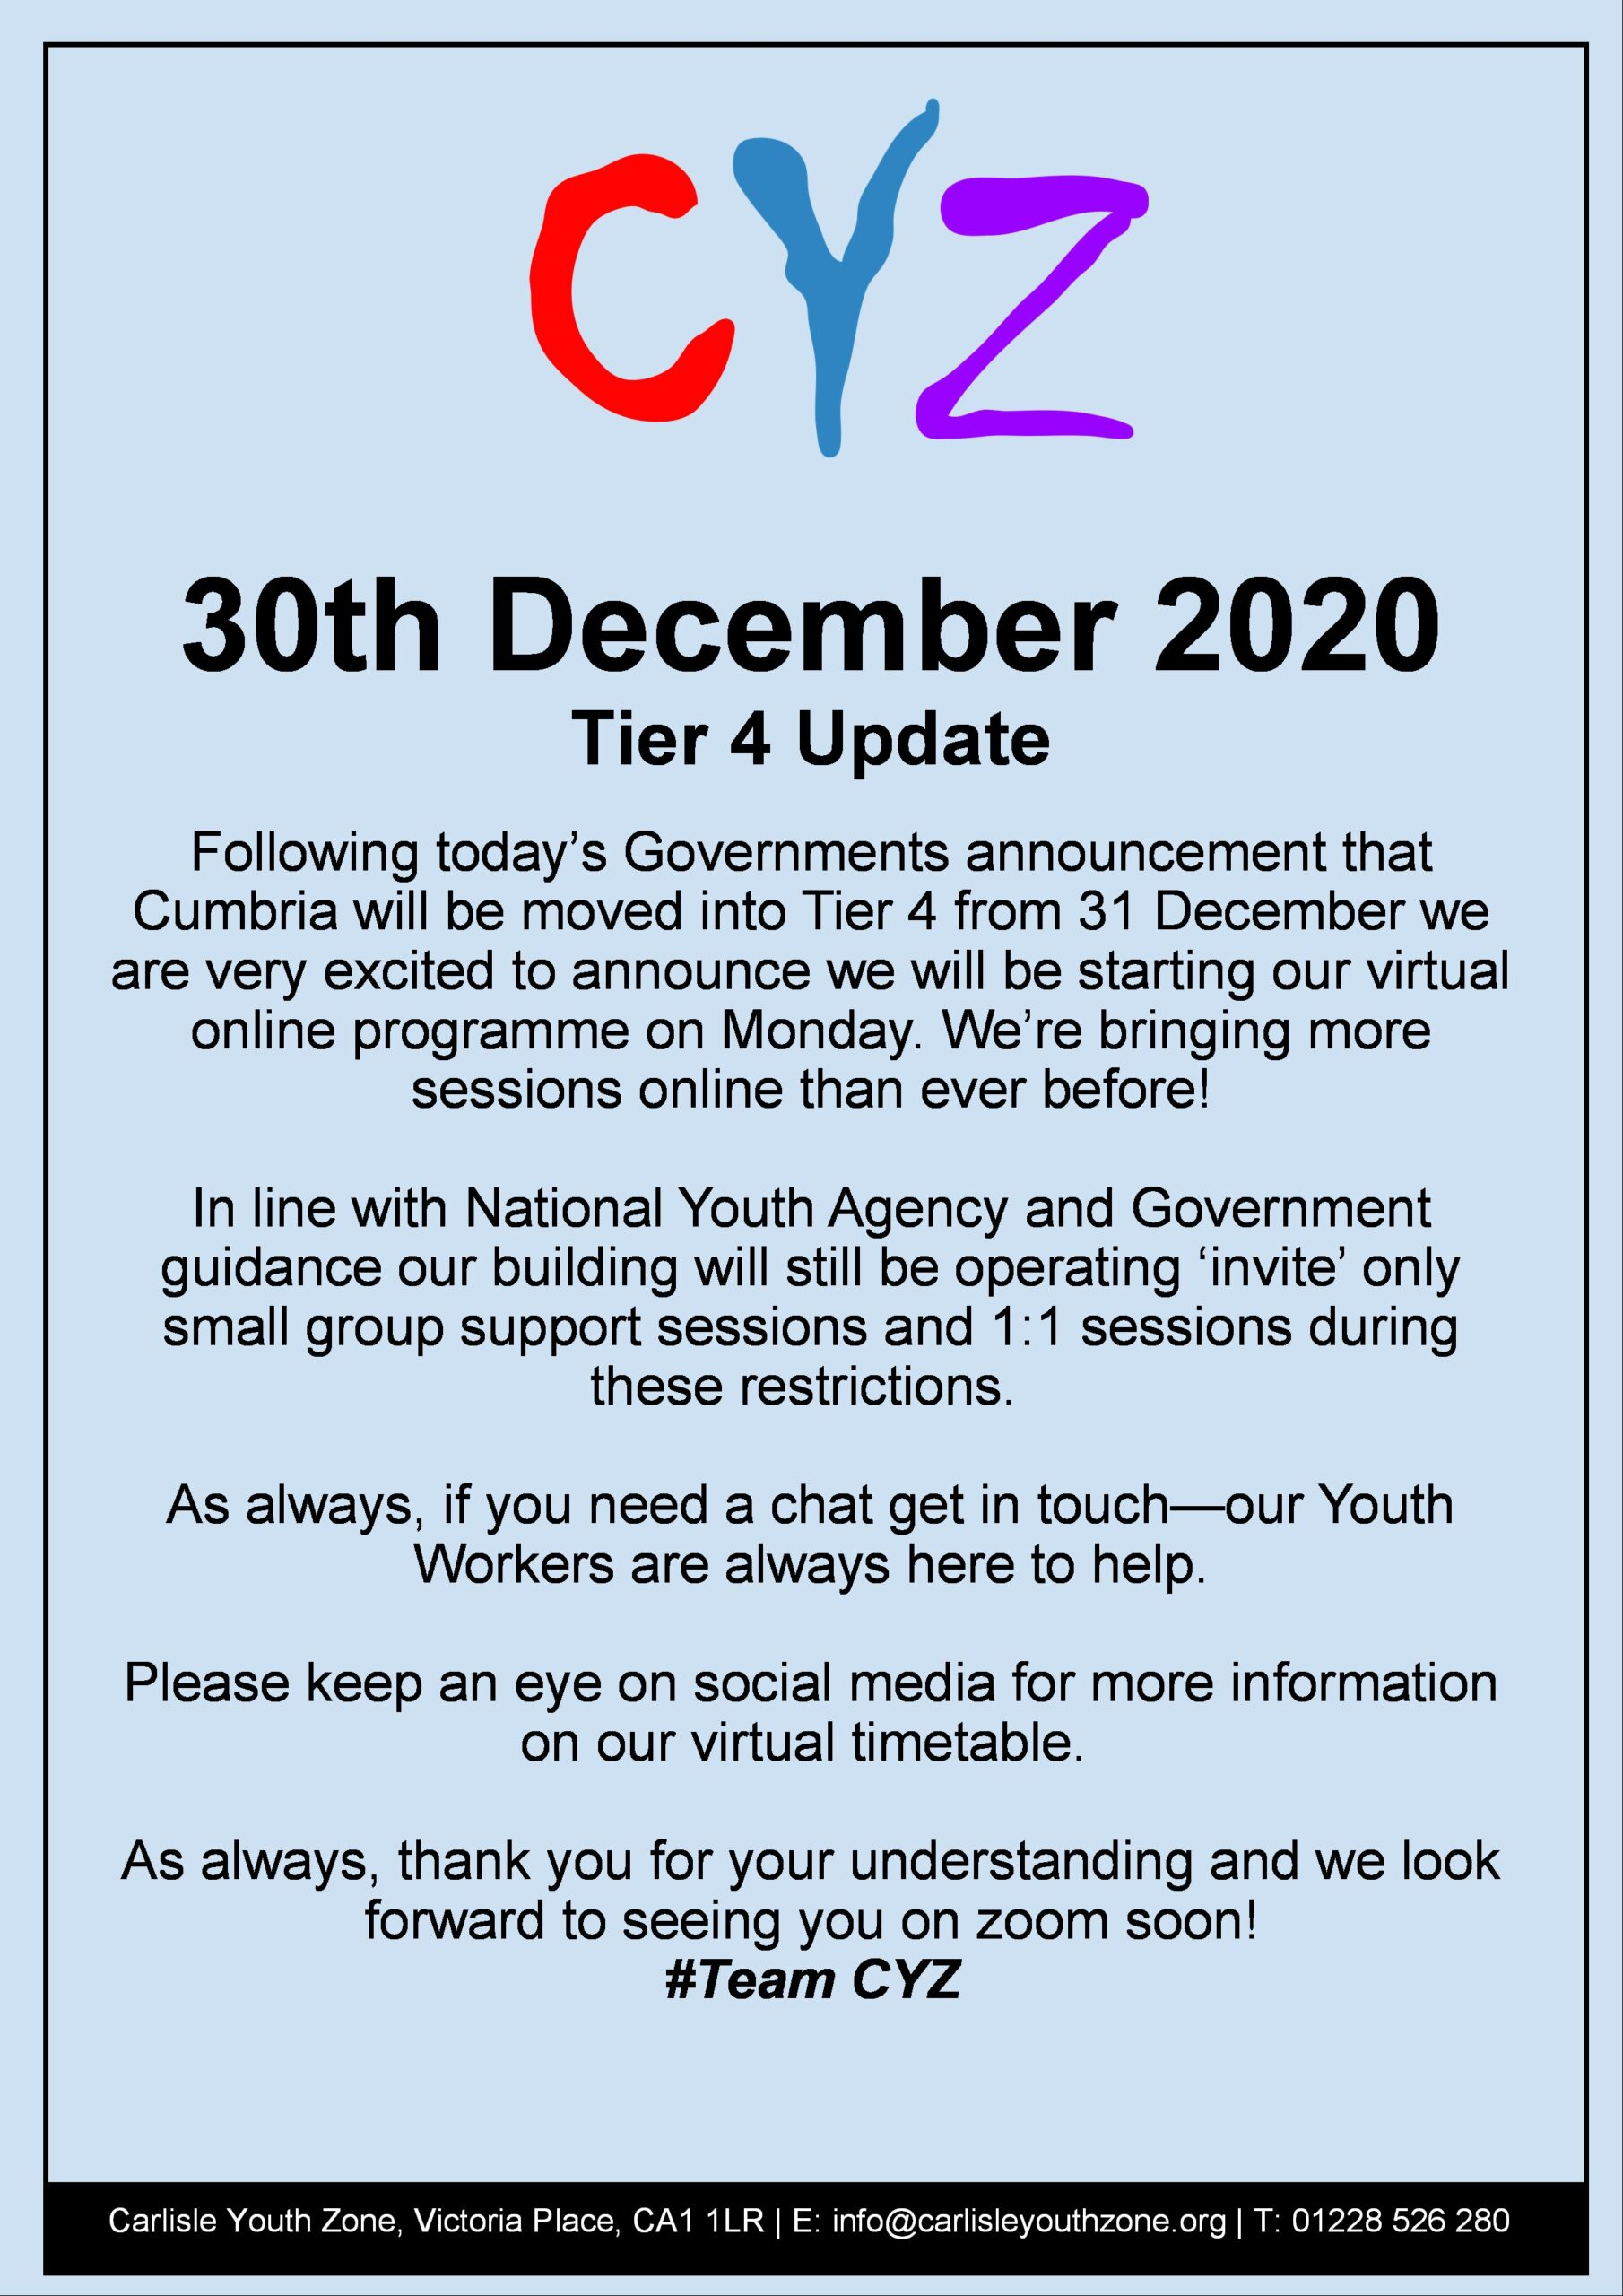 Graphic of Covic 19 Tier 4 Statement from 30th December